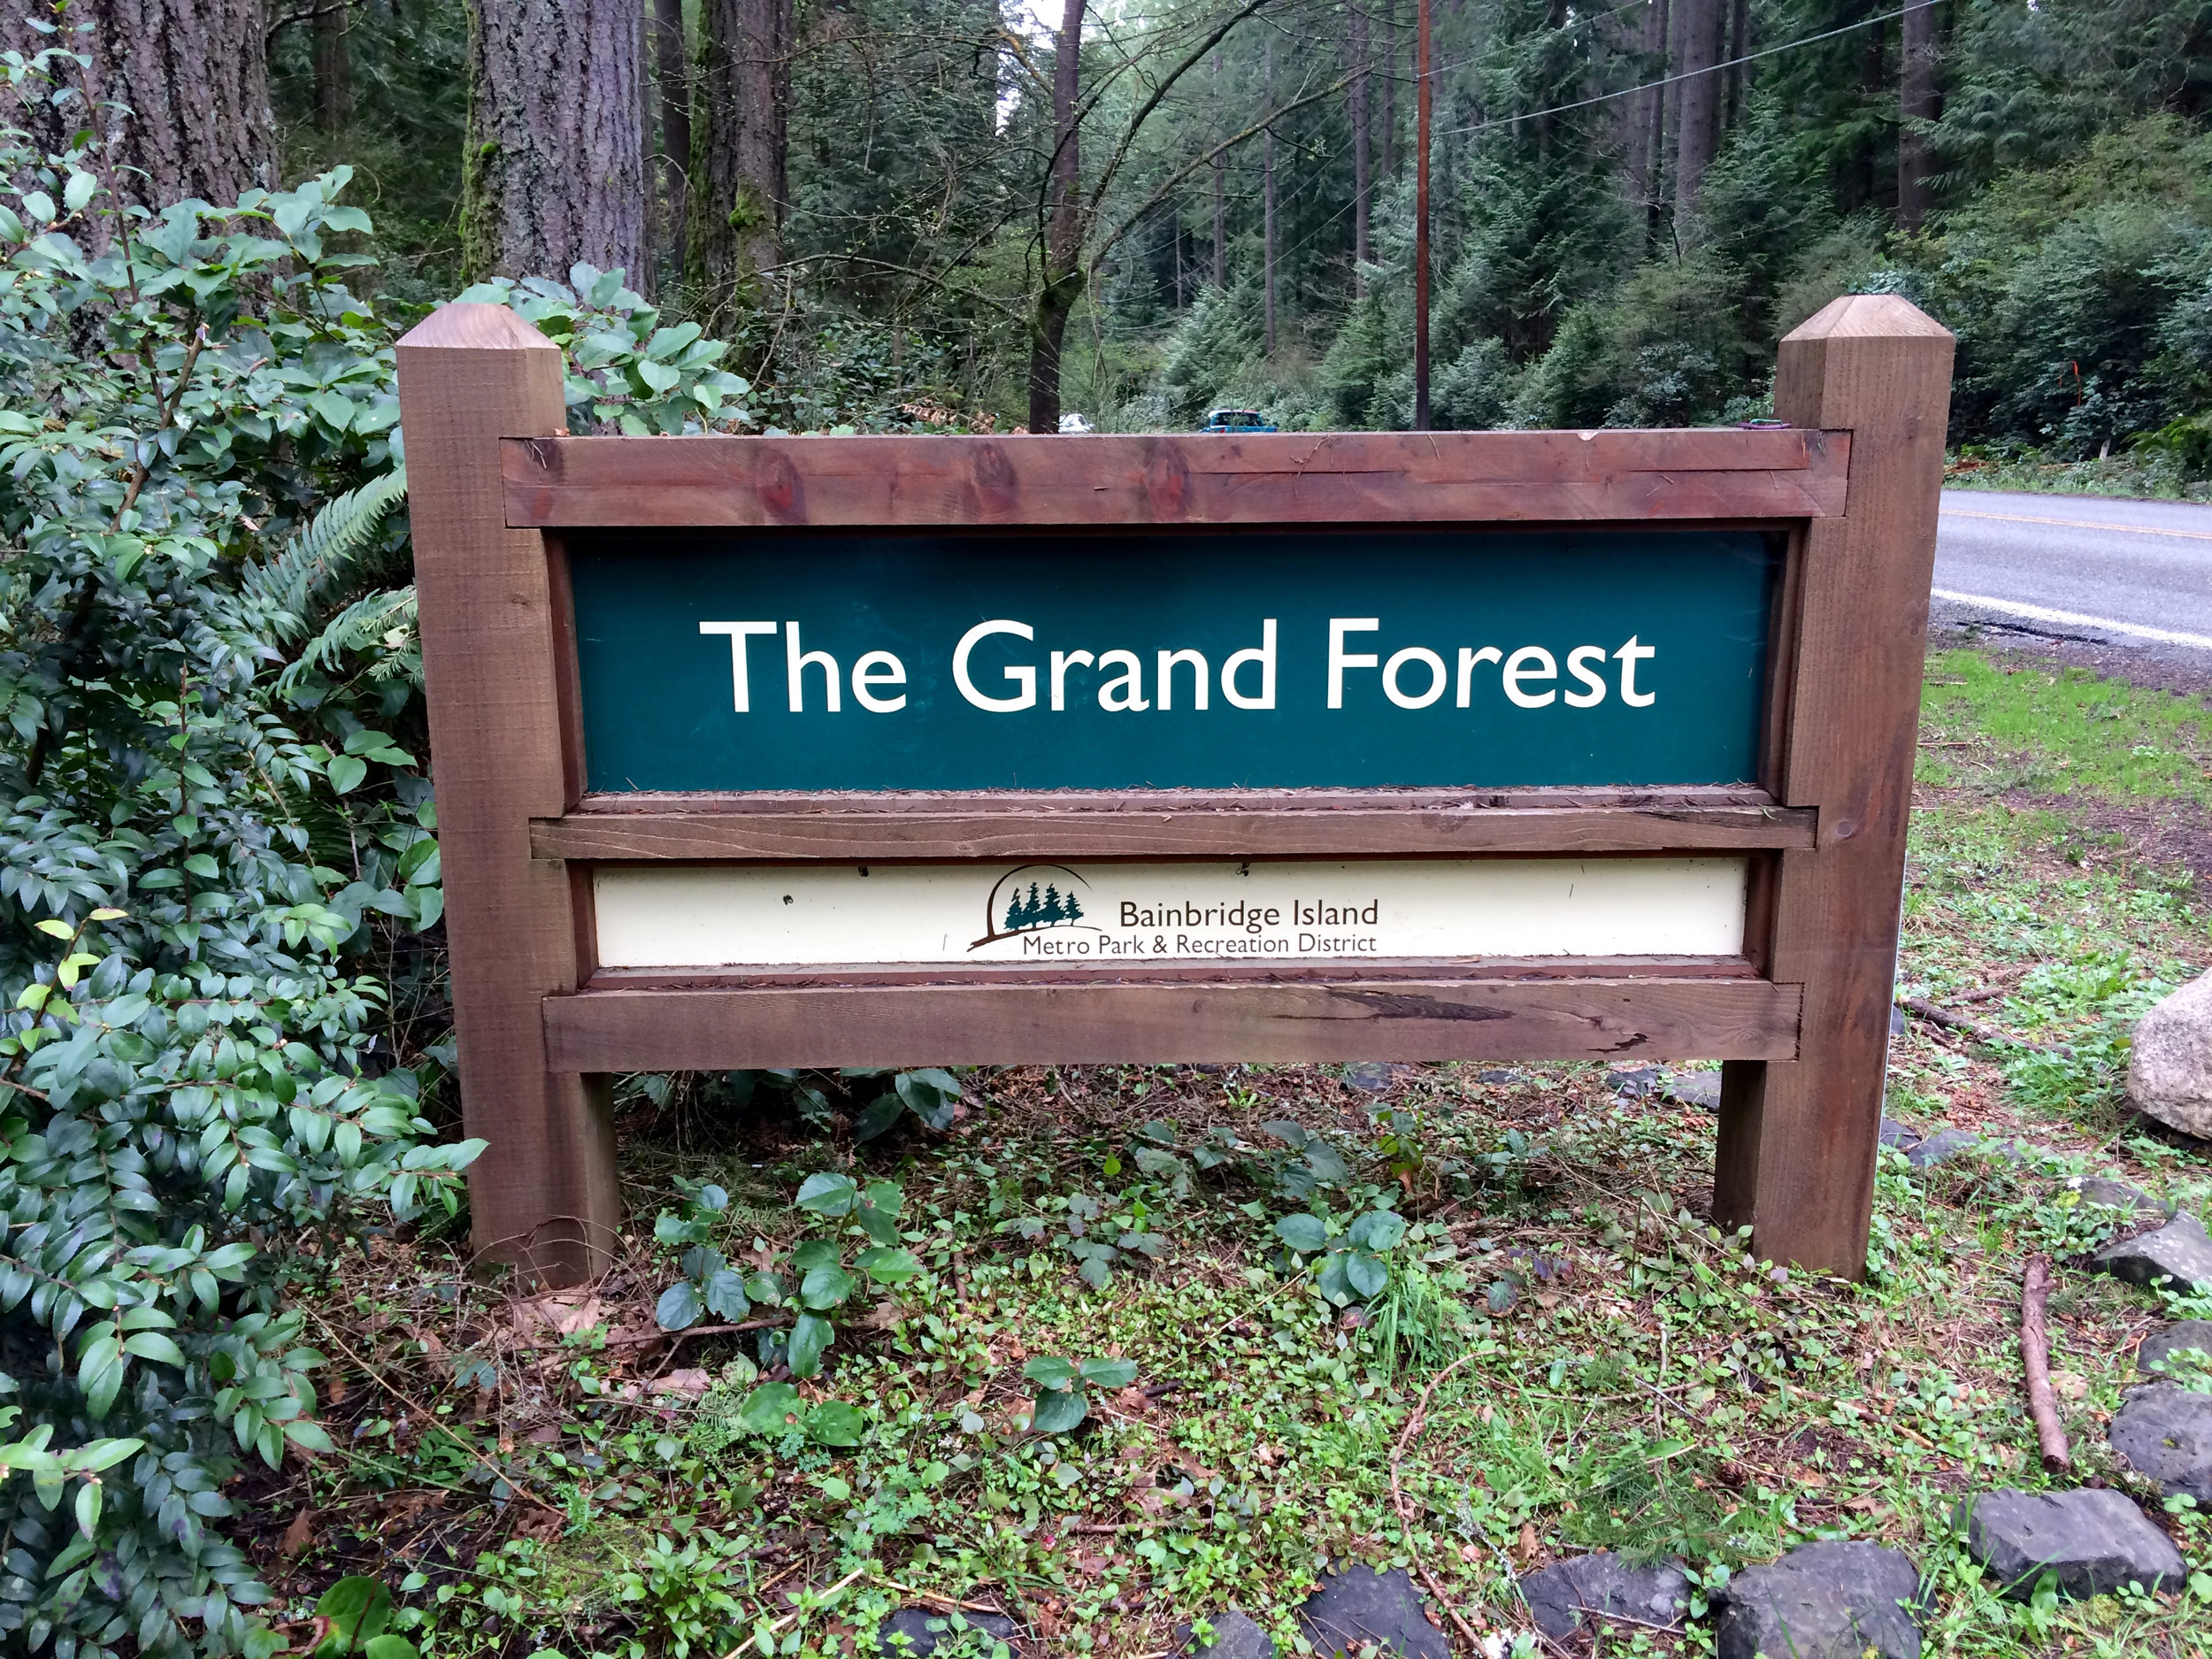 The Grand Forest road marker for the parking lot